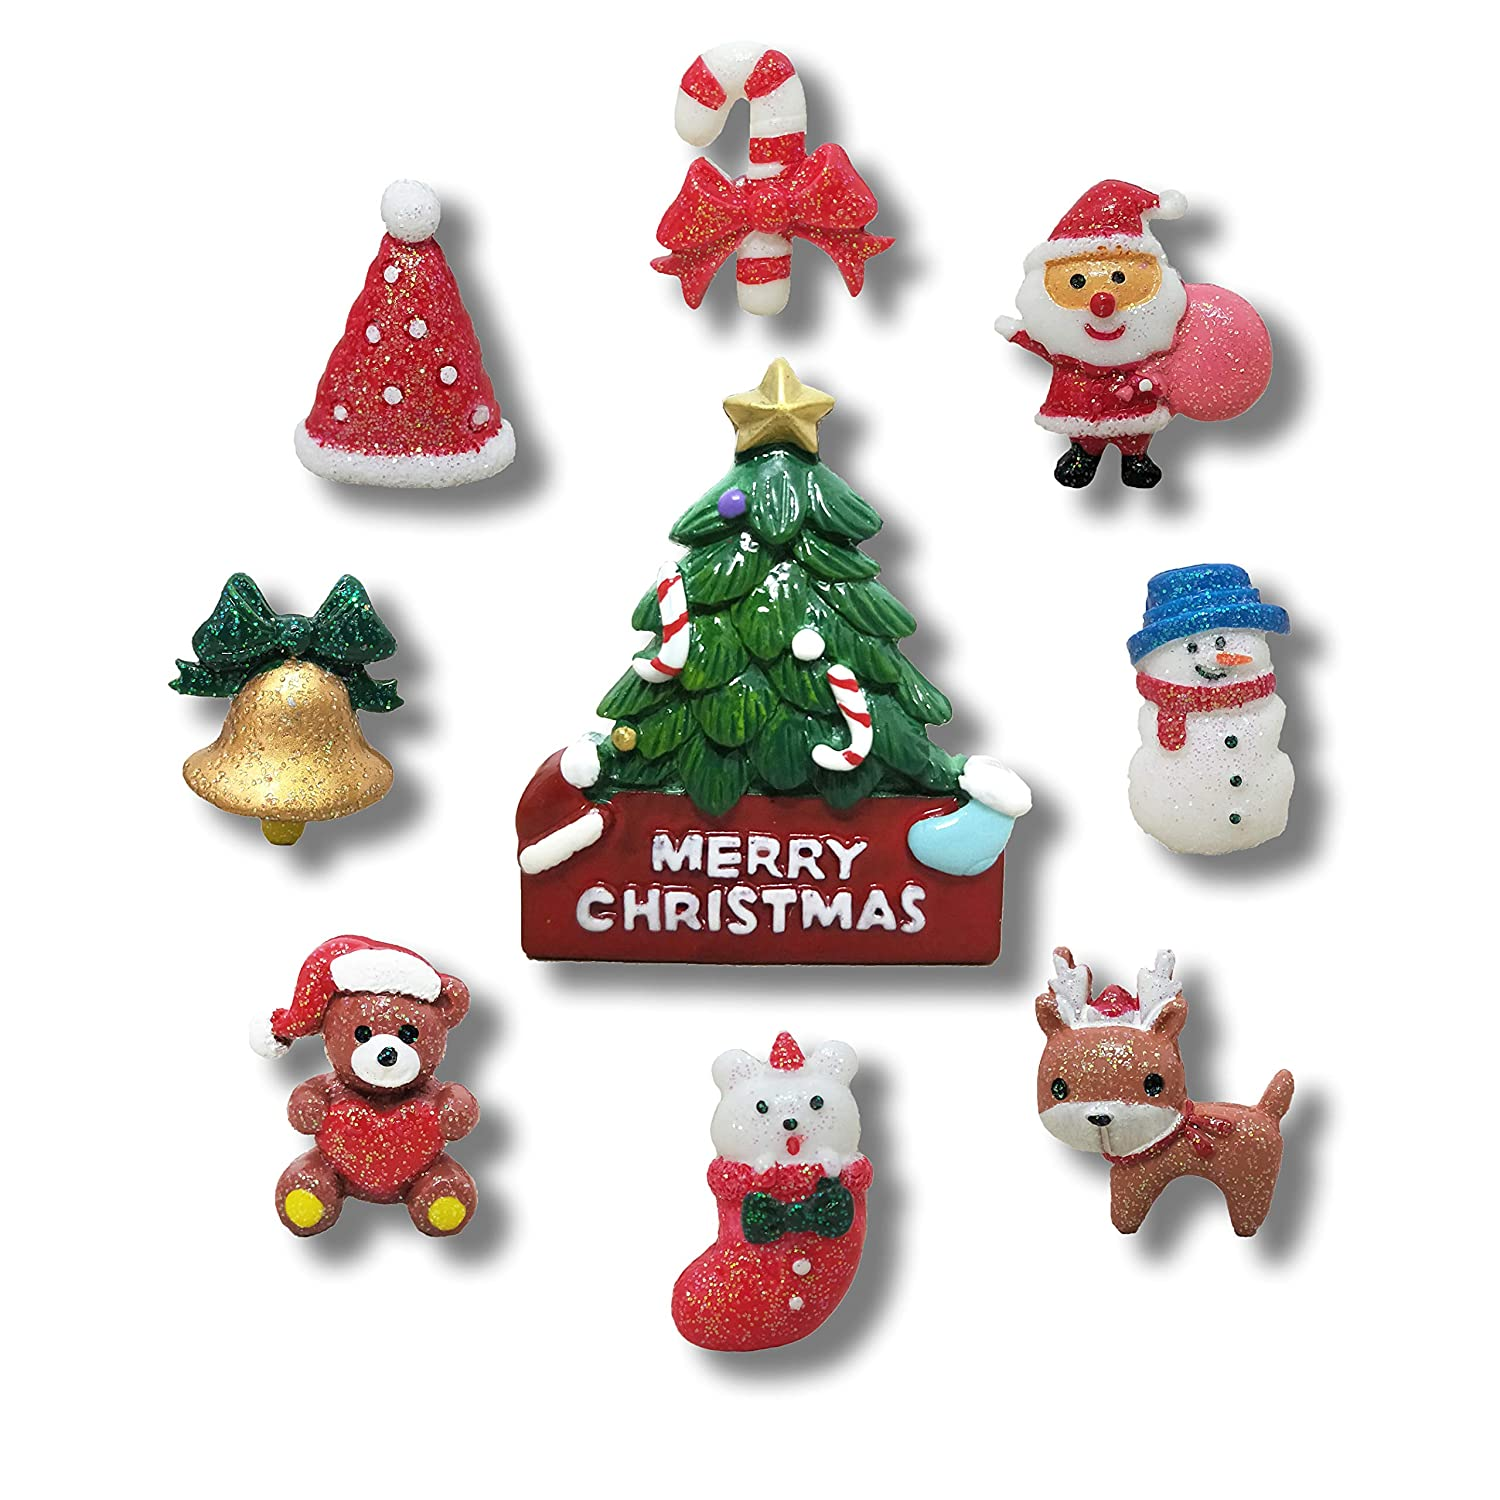 9 Pack Creative Christmas Fridge Magnet Gifts Christmas Day Home Decoration Kids Refrigerator Magnet - Perfect Magnets for Whiteboard, Refrigerator, Map and Calendar